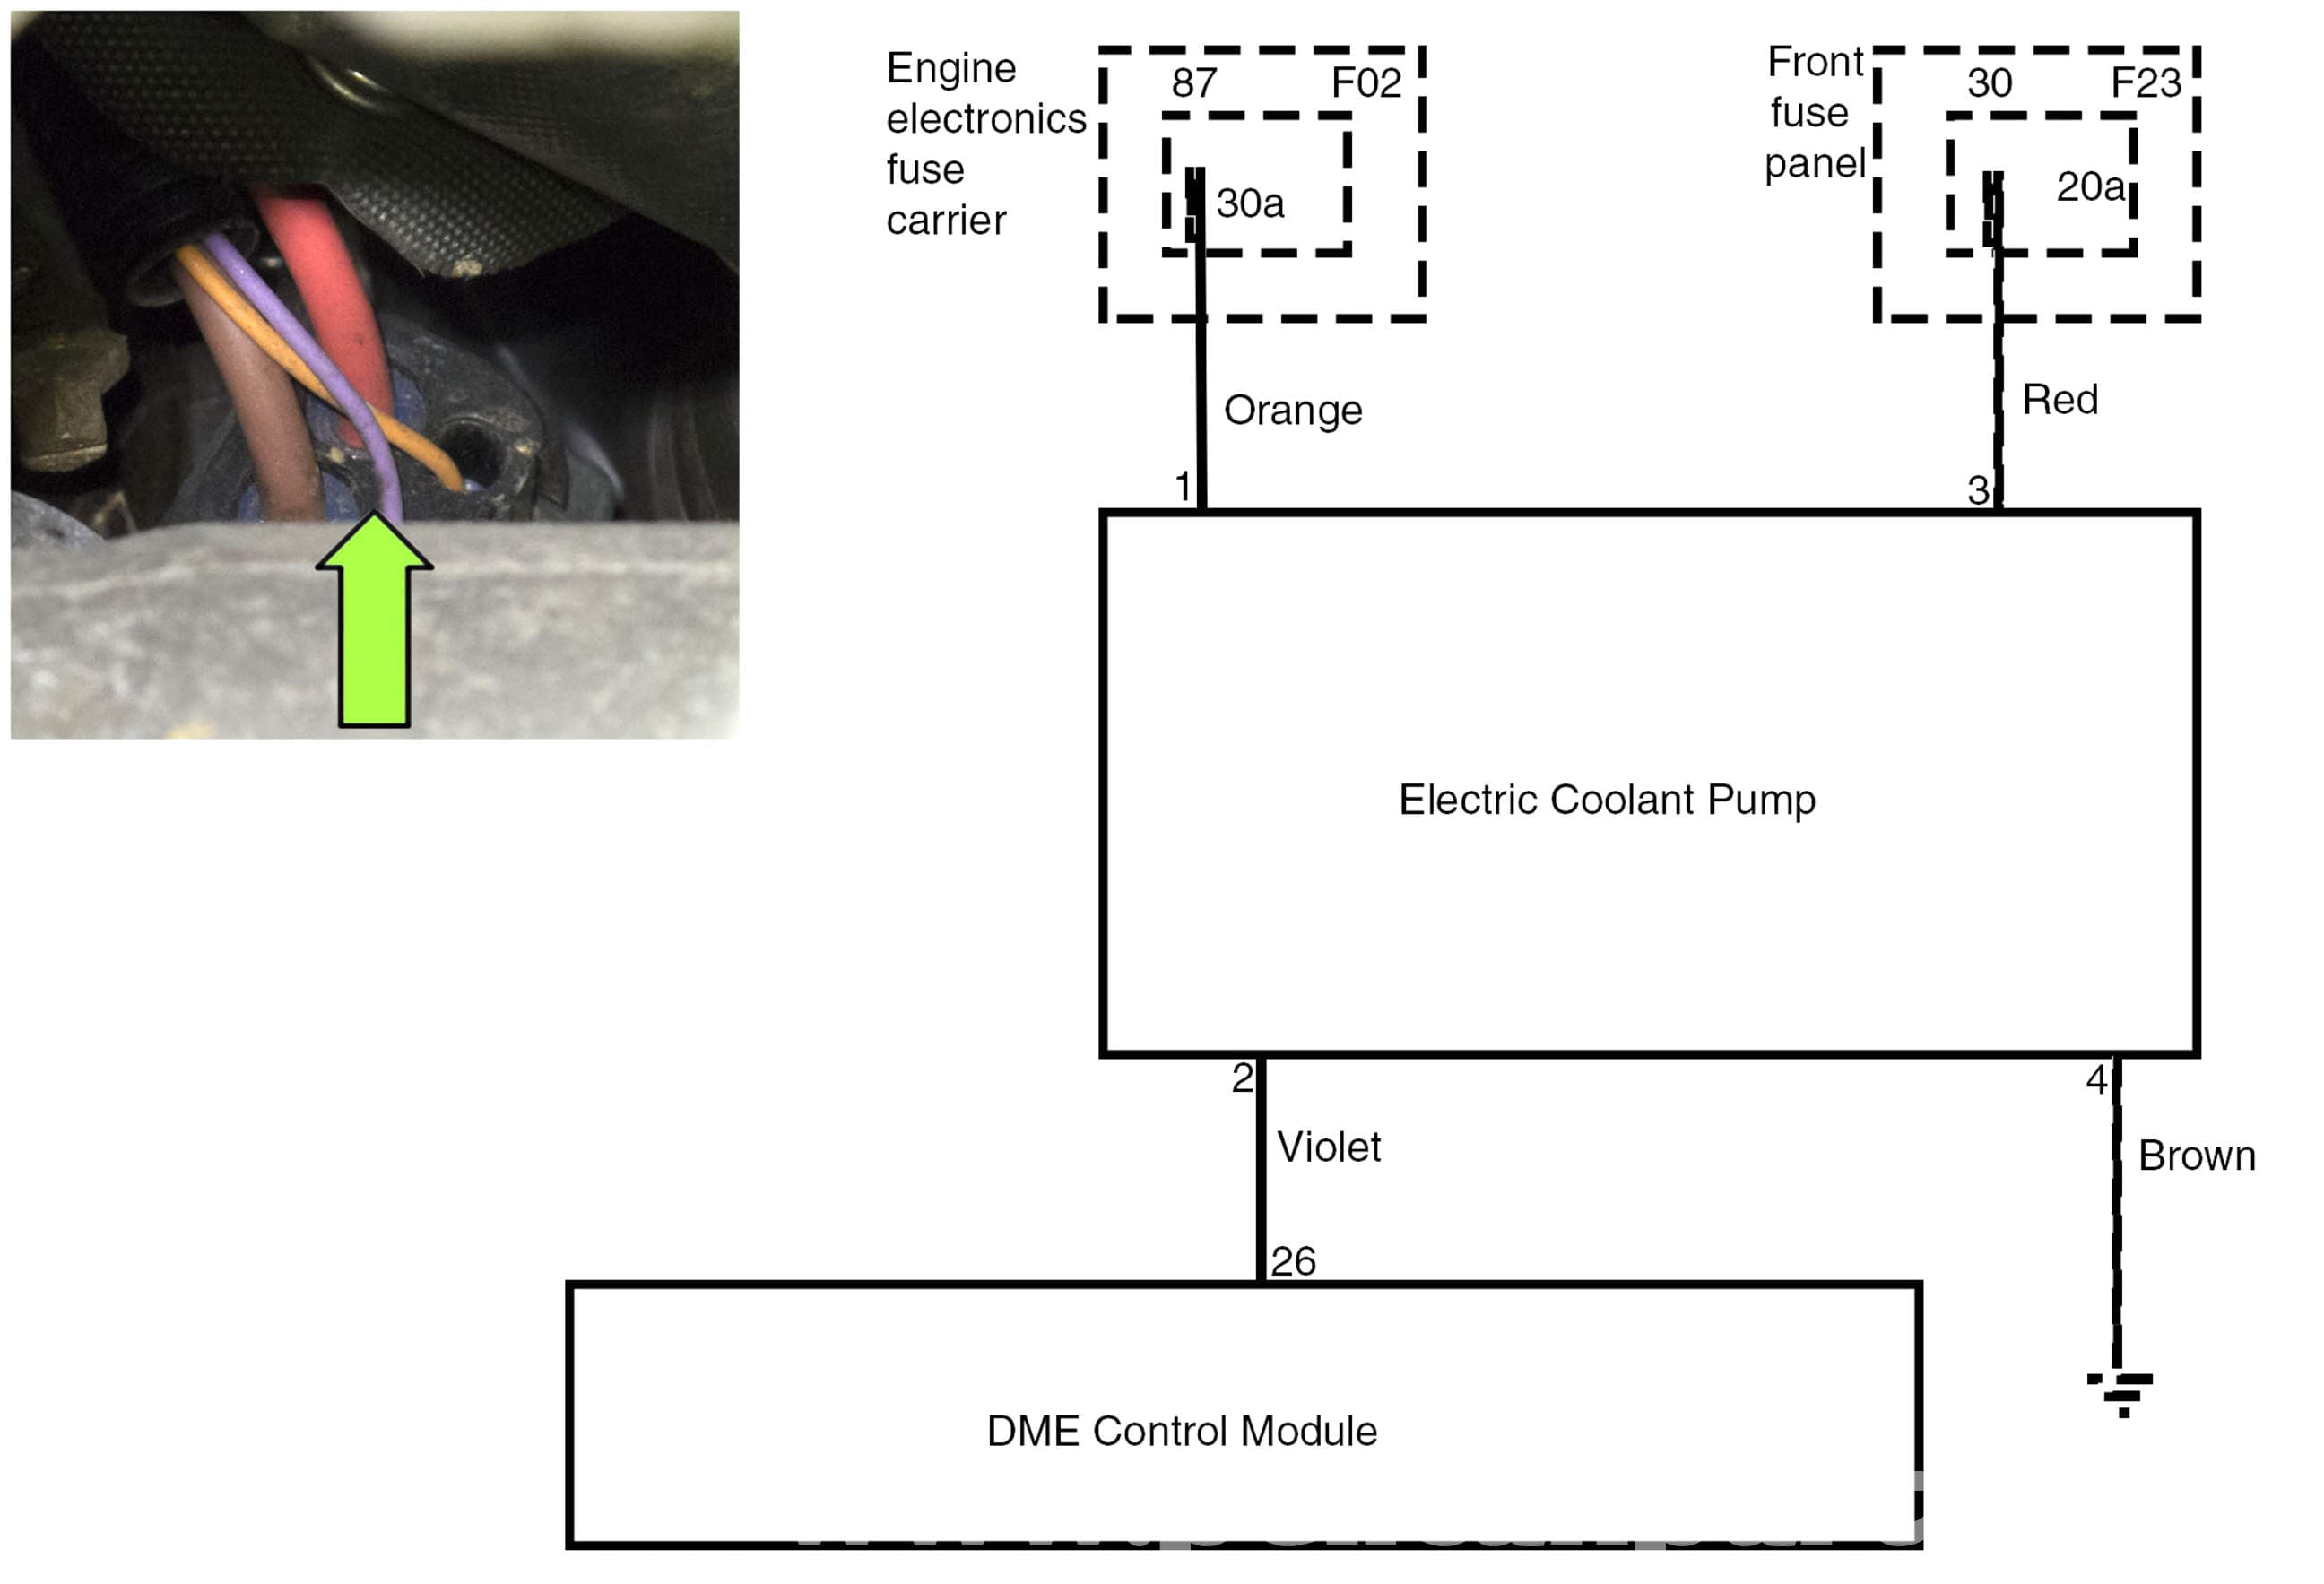 Wiring Diagram Bmw 335i Schemes 2004 Z4 Electric Water Pump Opinions About U2022 325i Plug